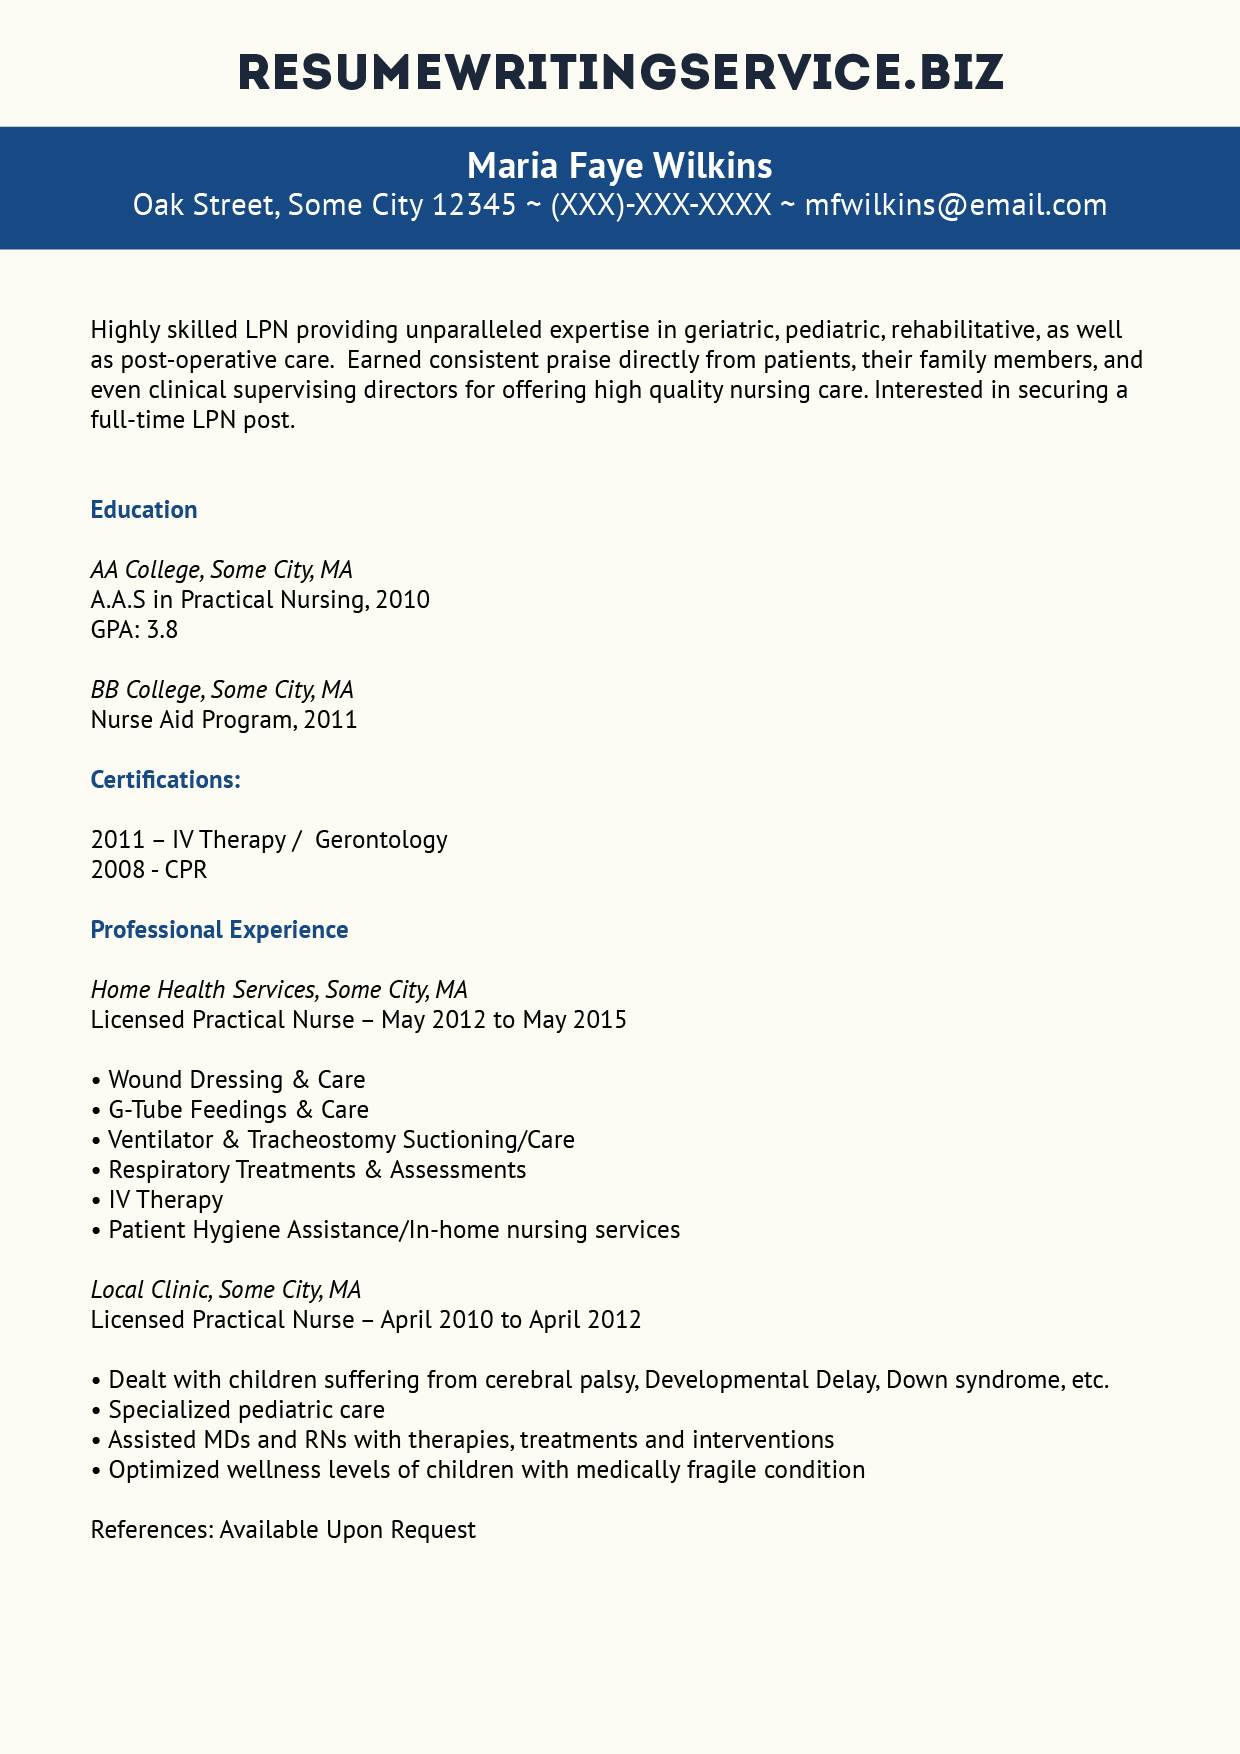 top quality lpn resume sample resume writing service